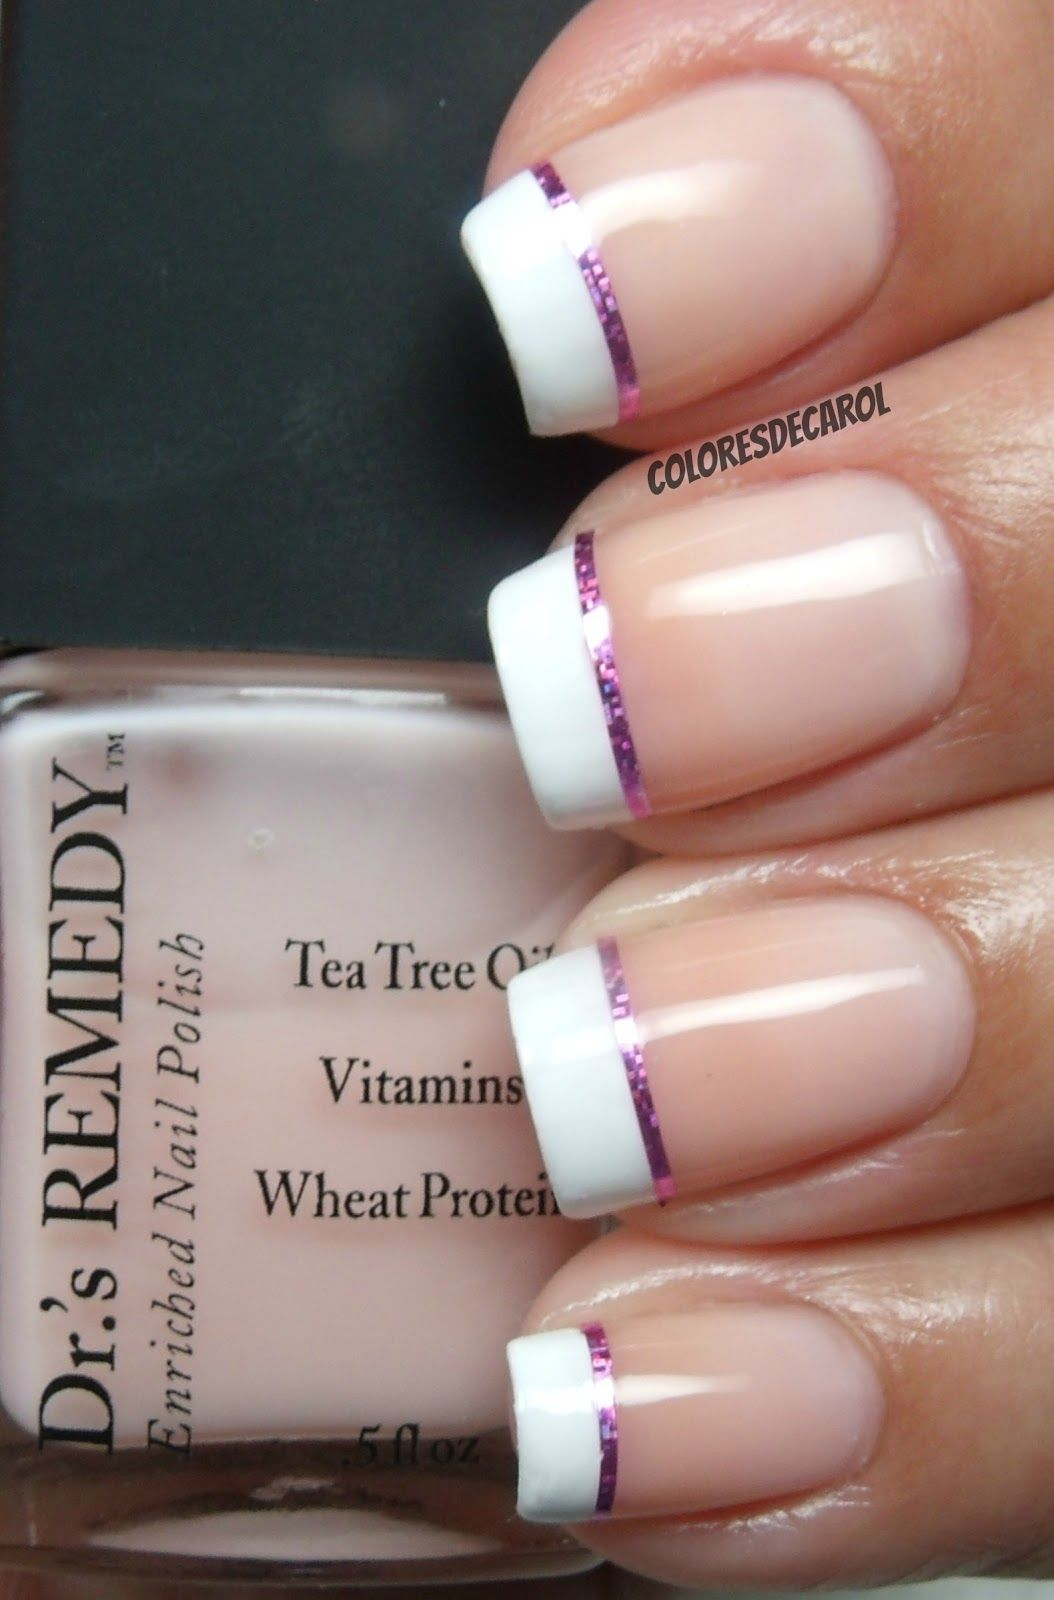 Dr S Remedy Bca 2012 Swatches And Review Nogti French Nails Acrylic Nails French Nail Art